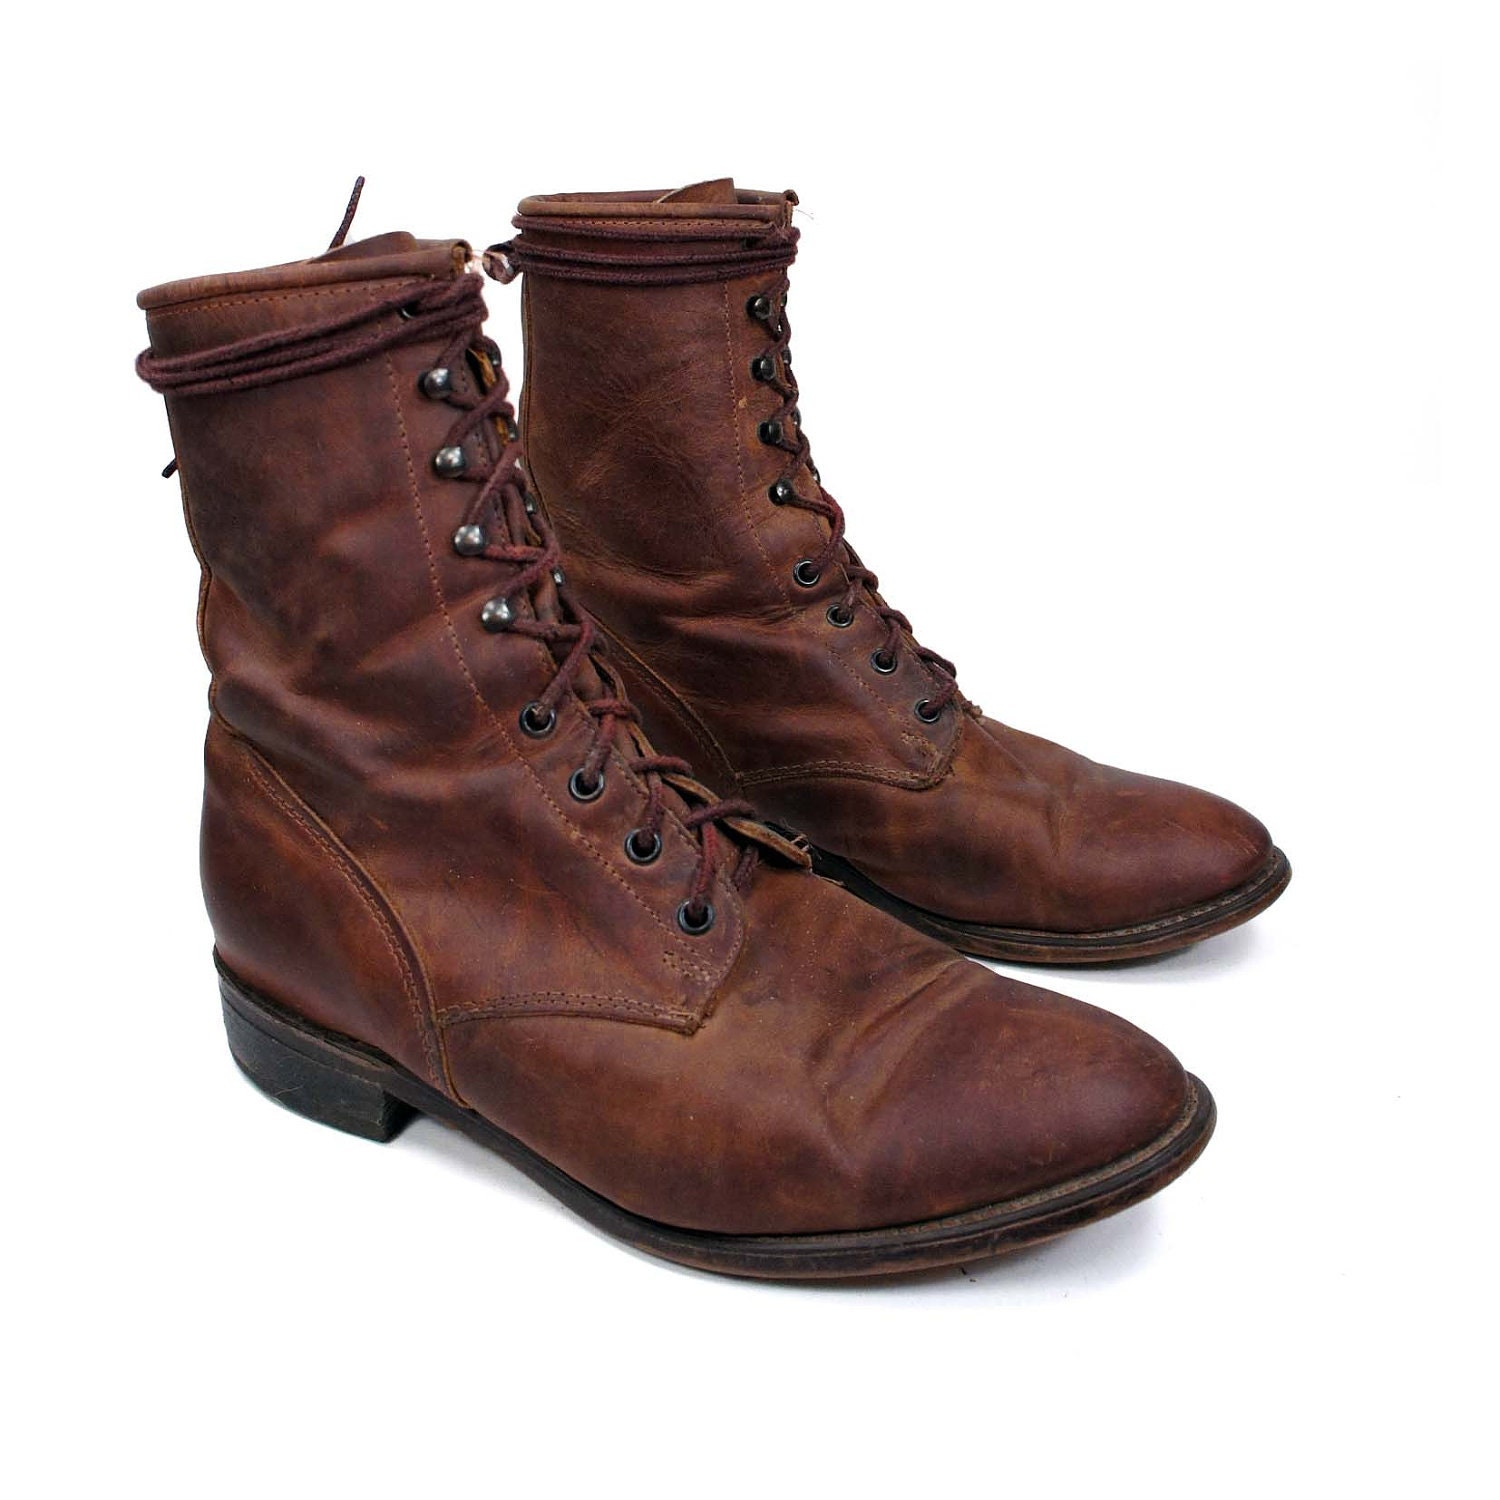 Vintage roper boots country western style in brown leather for a men